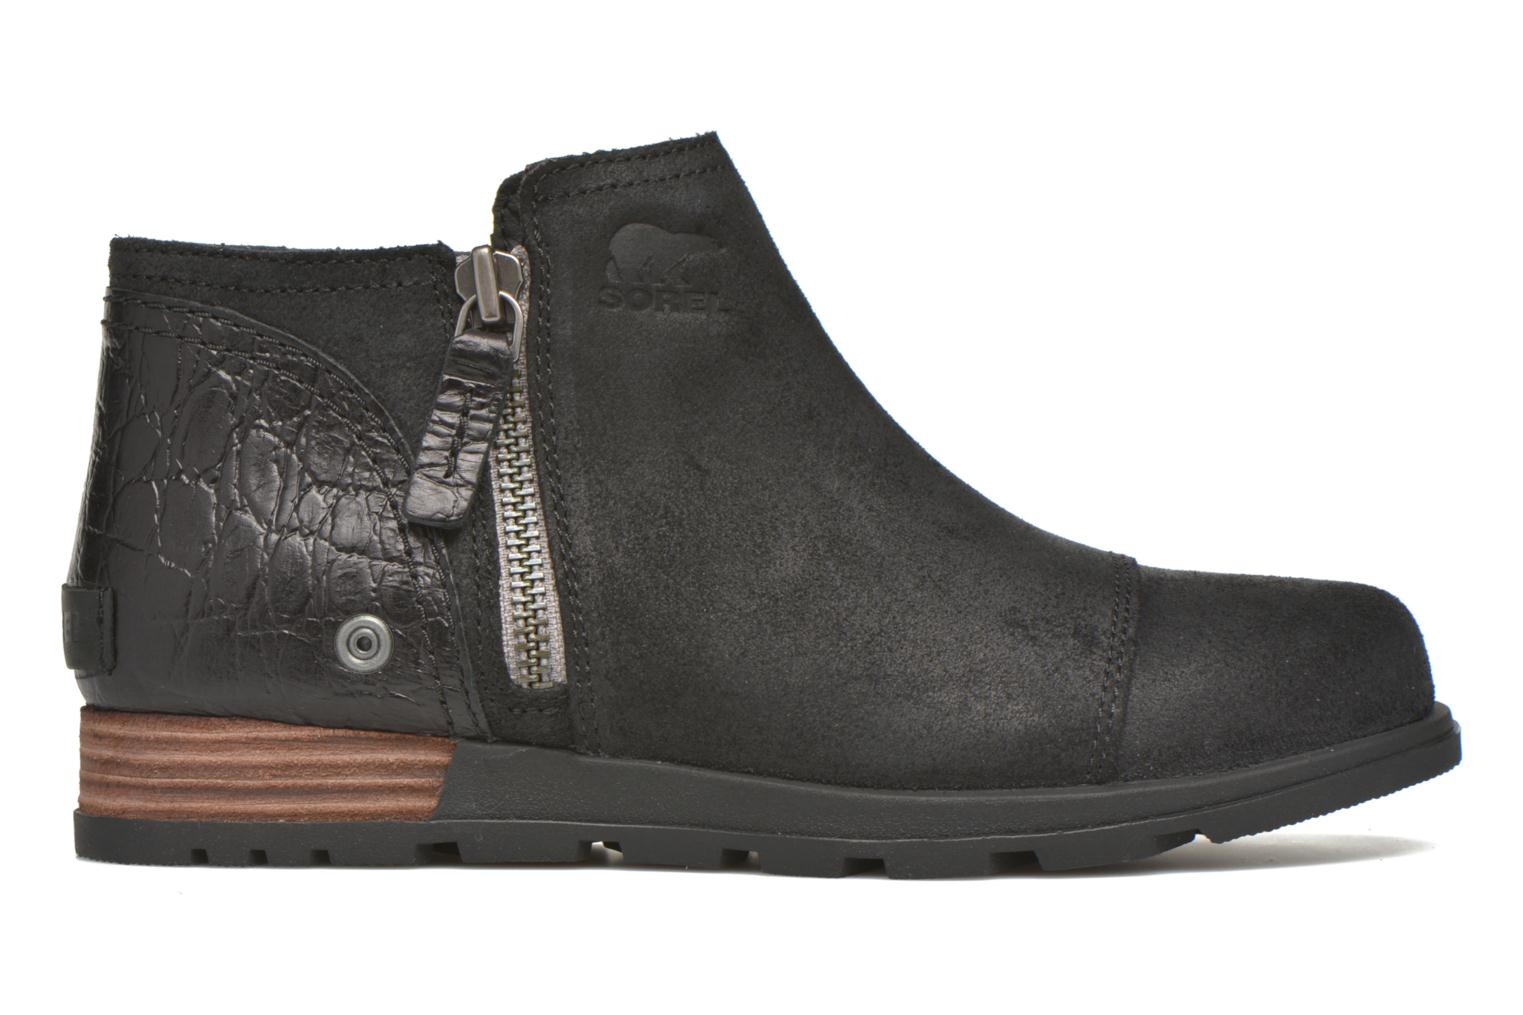 Bottines et boots Sorel Sorel Major Low Noir vue derrière